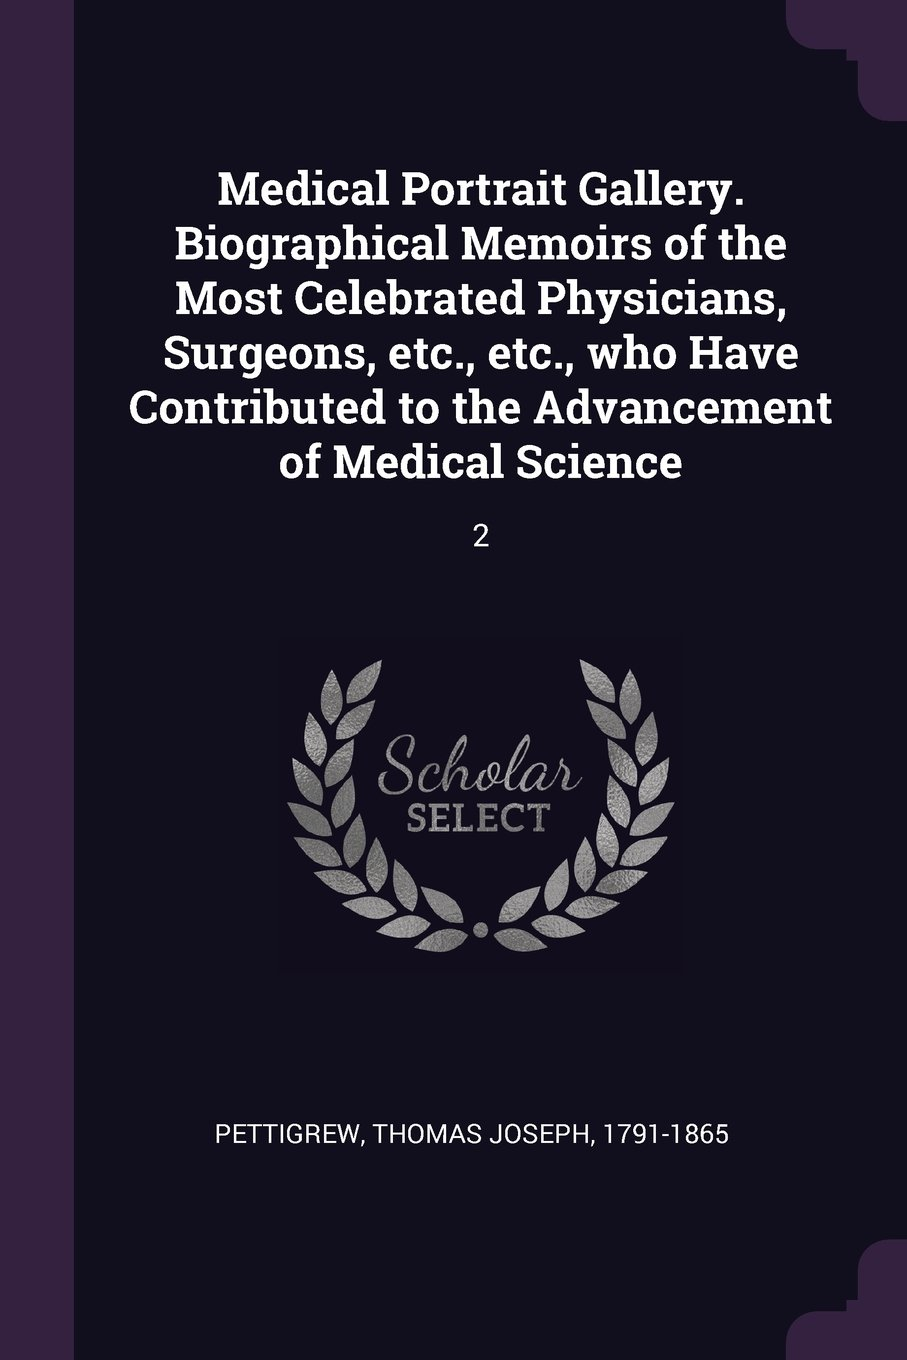 Download Medical Portrait Gallery. Biographical Memoirs of the Most Celebrated Physicians, Surgeons, Etc., Etc., Who Have Contributed to the Advancement of Medical Science: 2 pdf